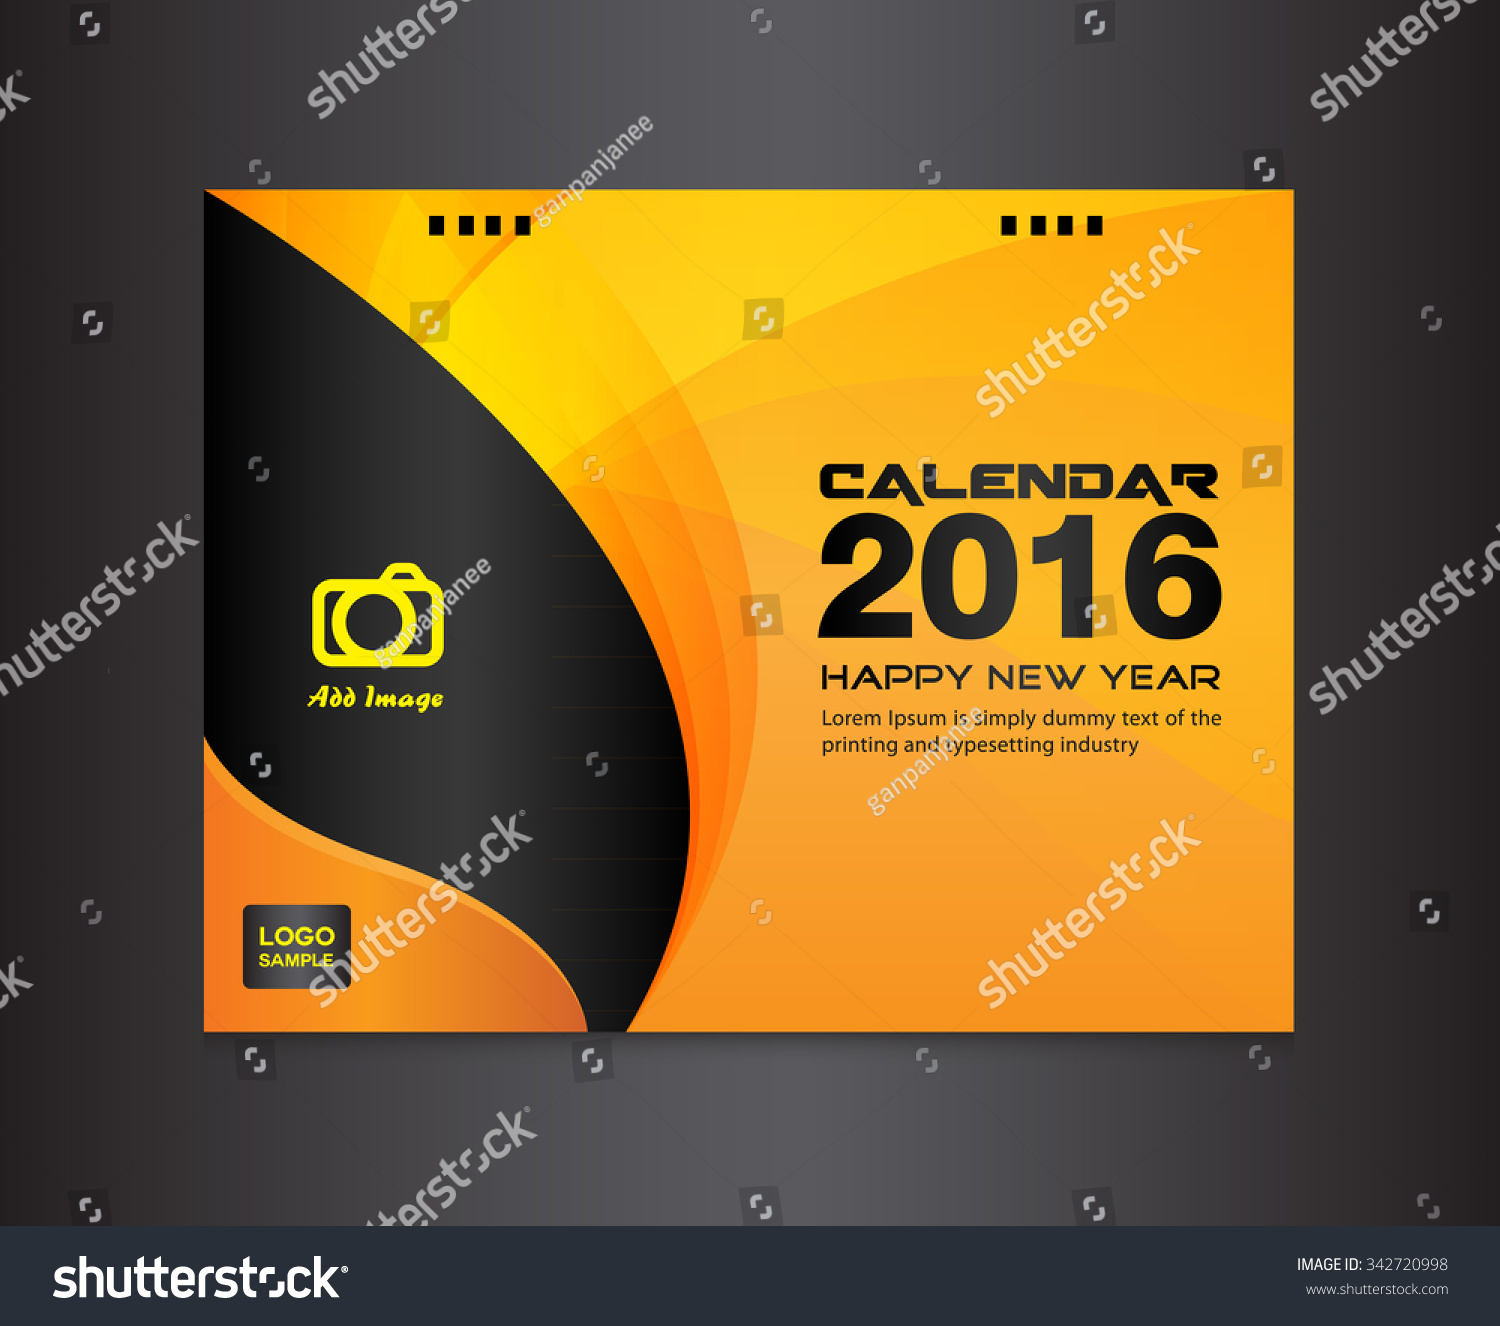 Cover Calendar Design Vector : Orange cover calendar design template